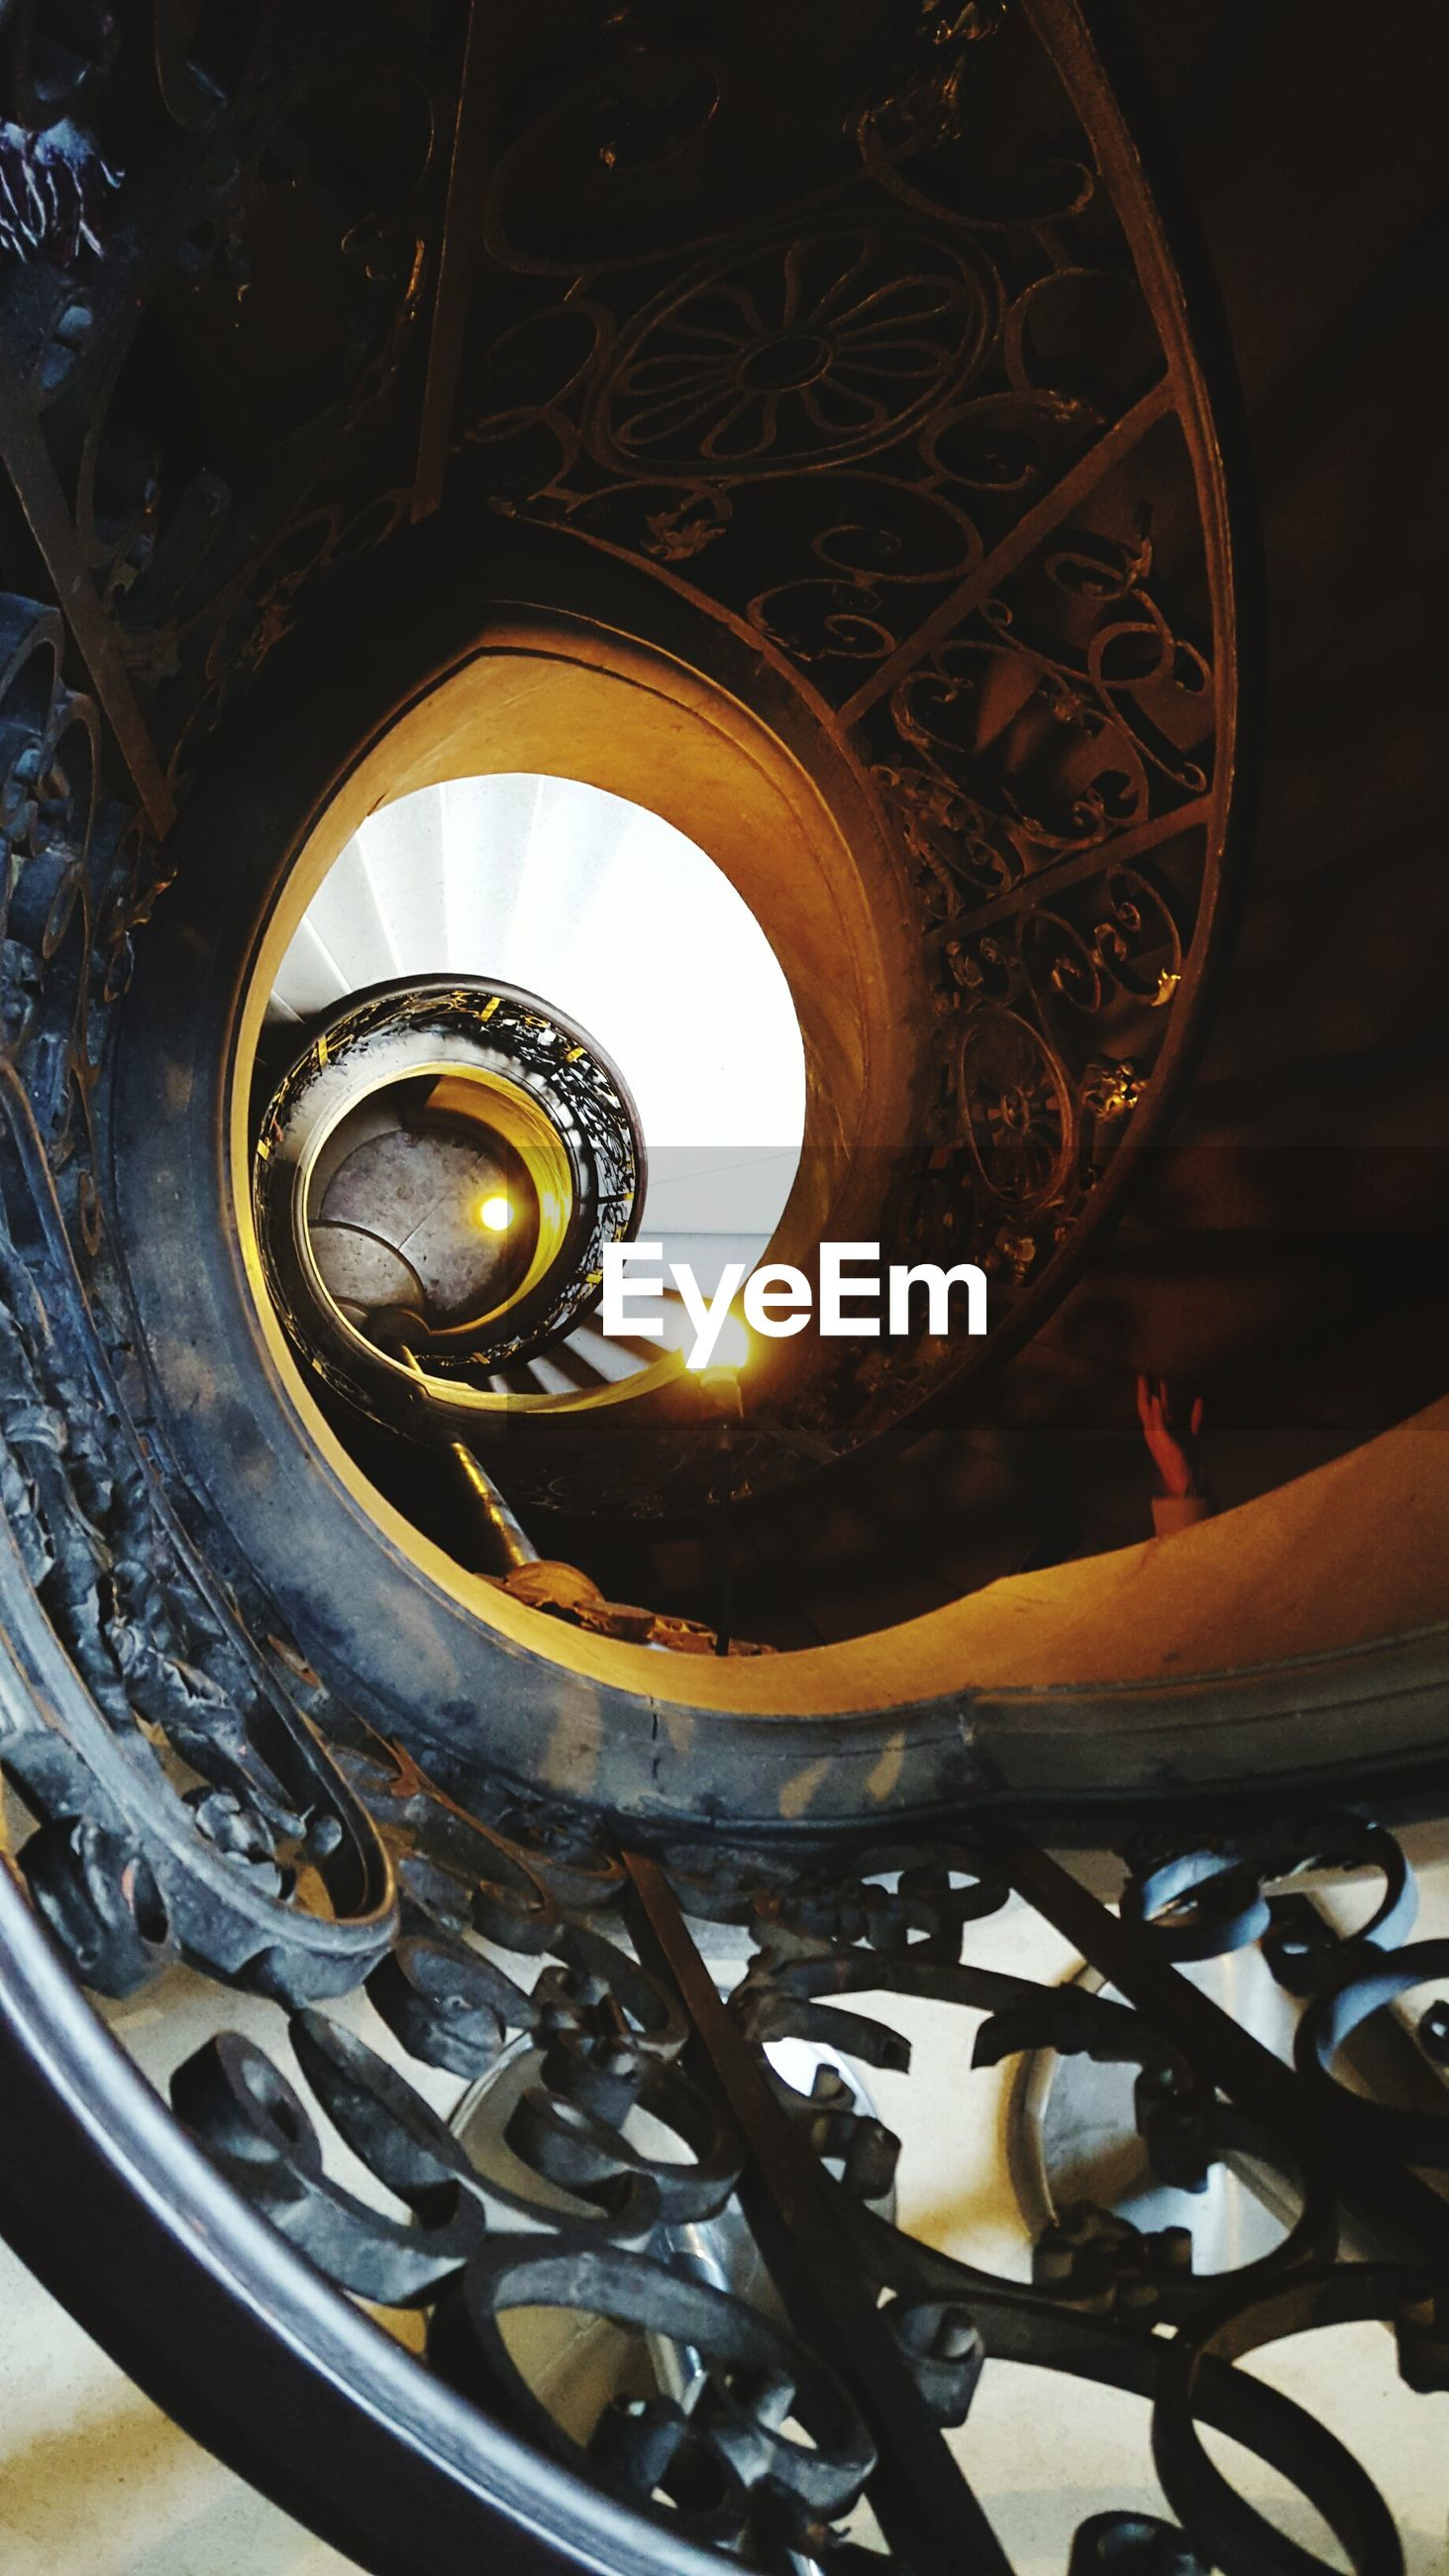 indoors, spiral, spiral staircase, circle, railing, metal, staircase, steps and staircases, steps, low angle view, design, wheel, directly below, part of, pattern, built structure, close-up, architecture, metallic, geometric shape